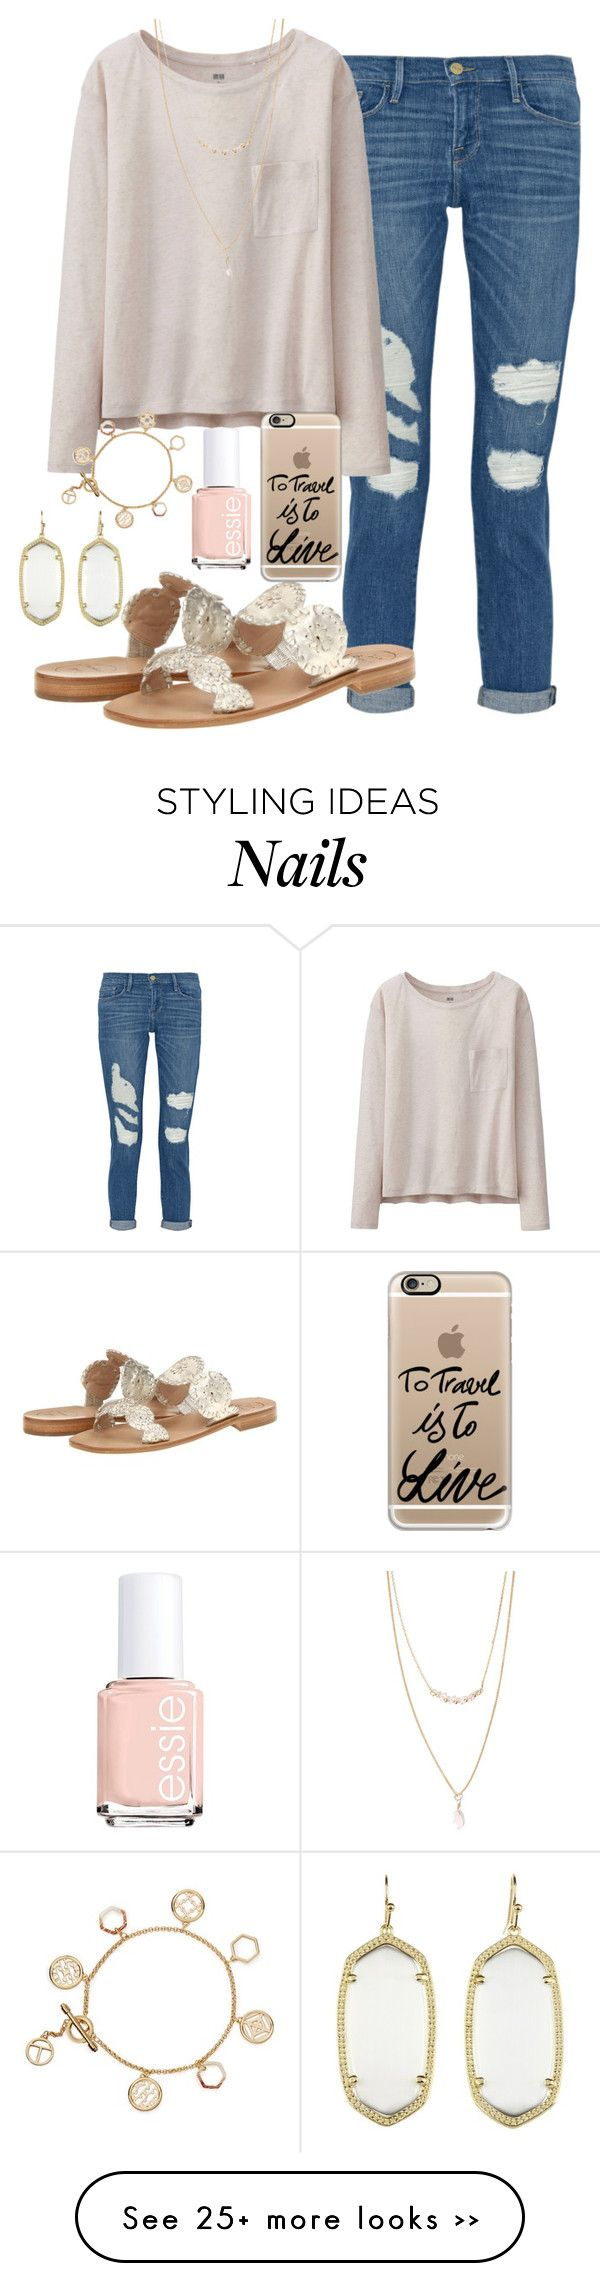 "nike wide shoes ""to travel is to live"" by judebellar03 on Polyvore 